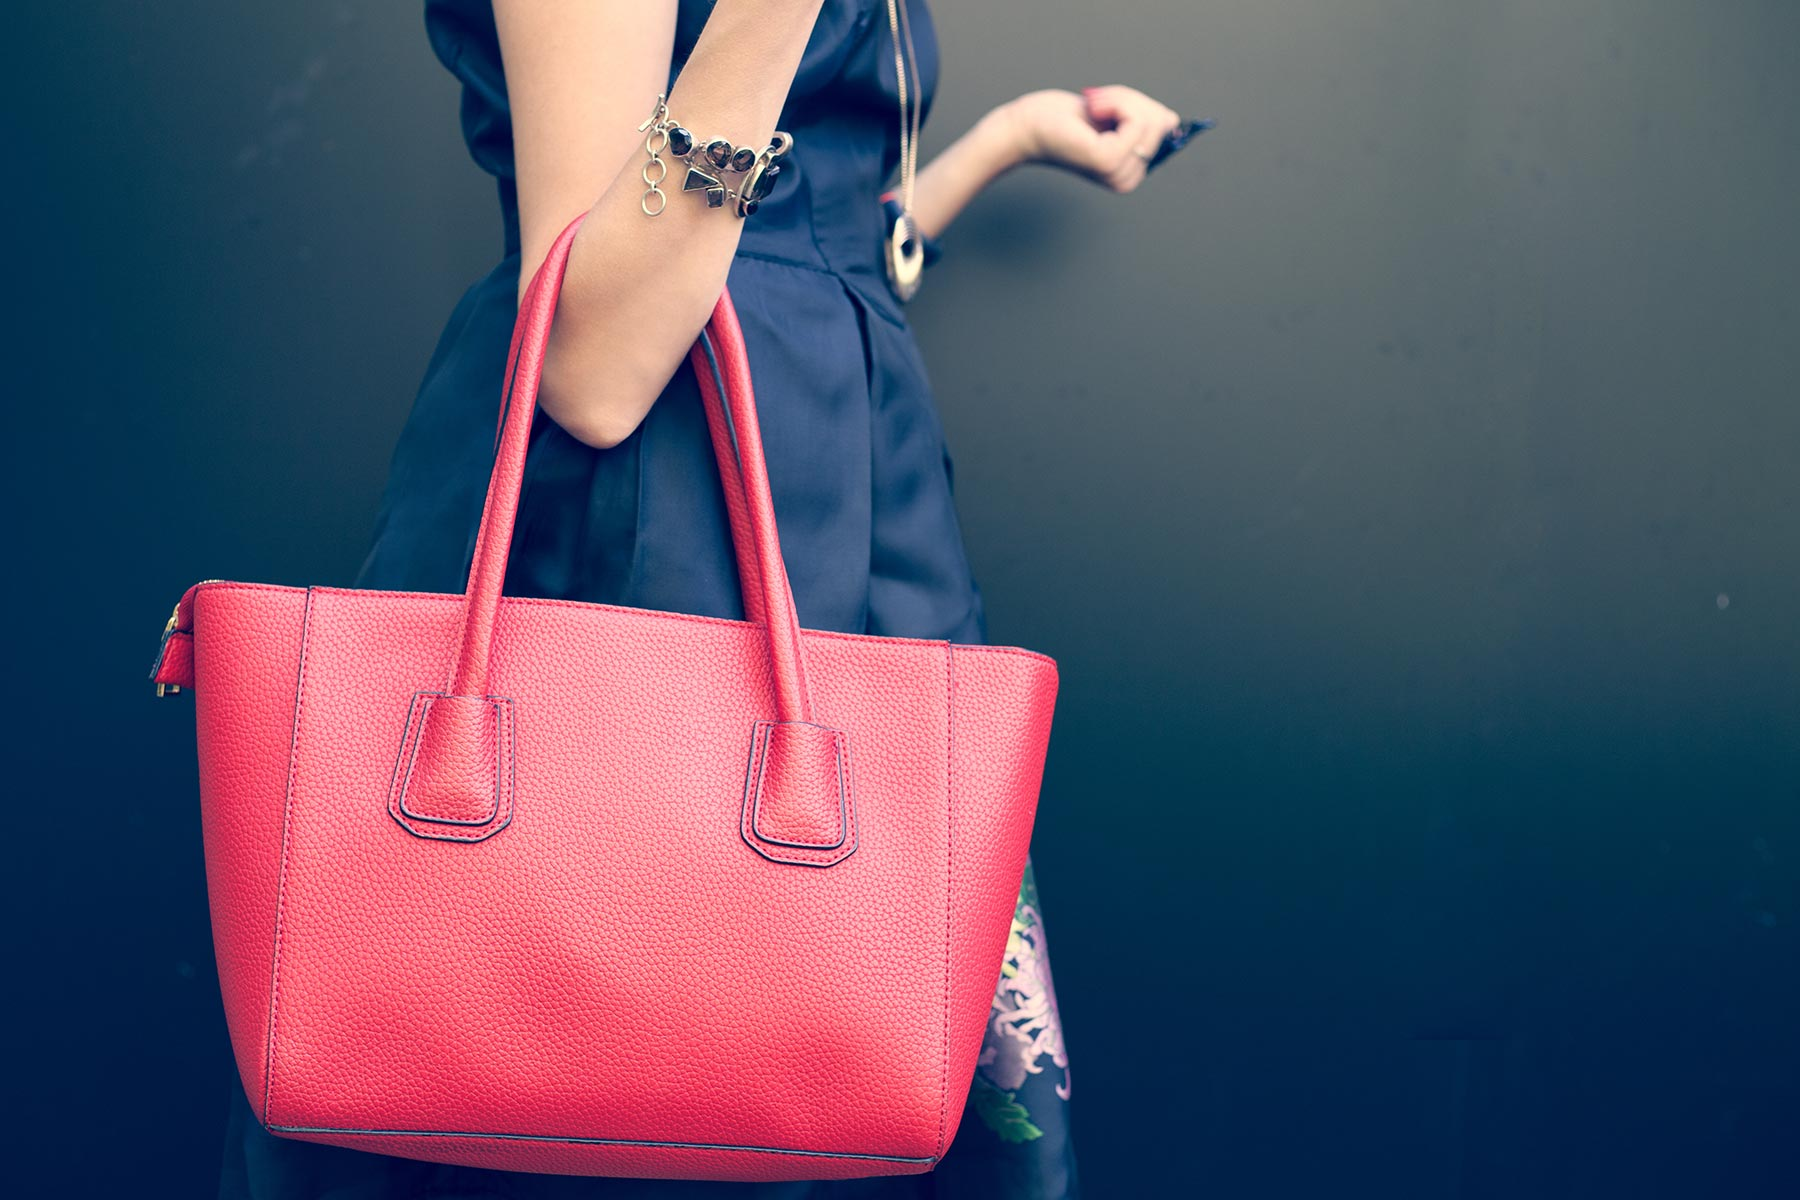 Woman carrying luxury handbag